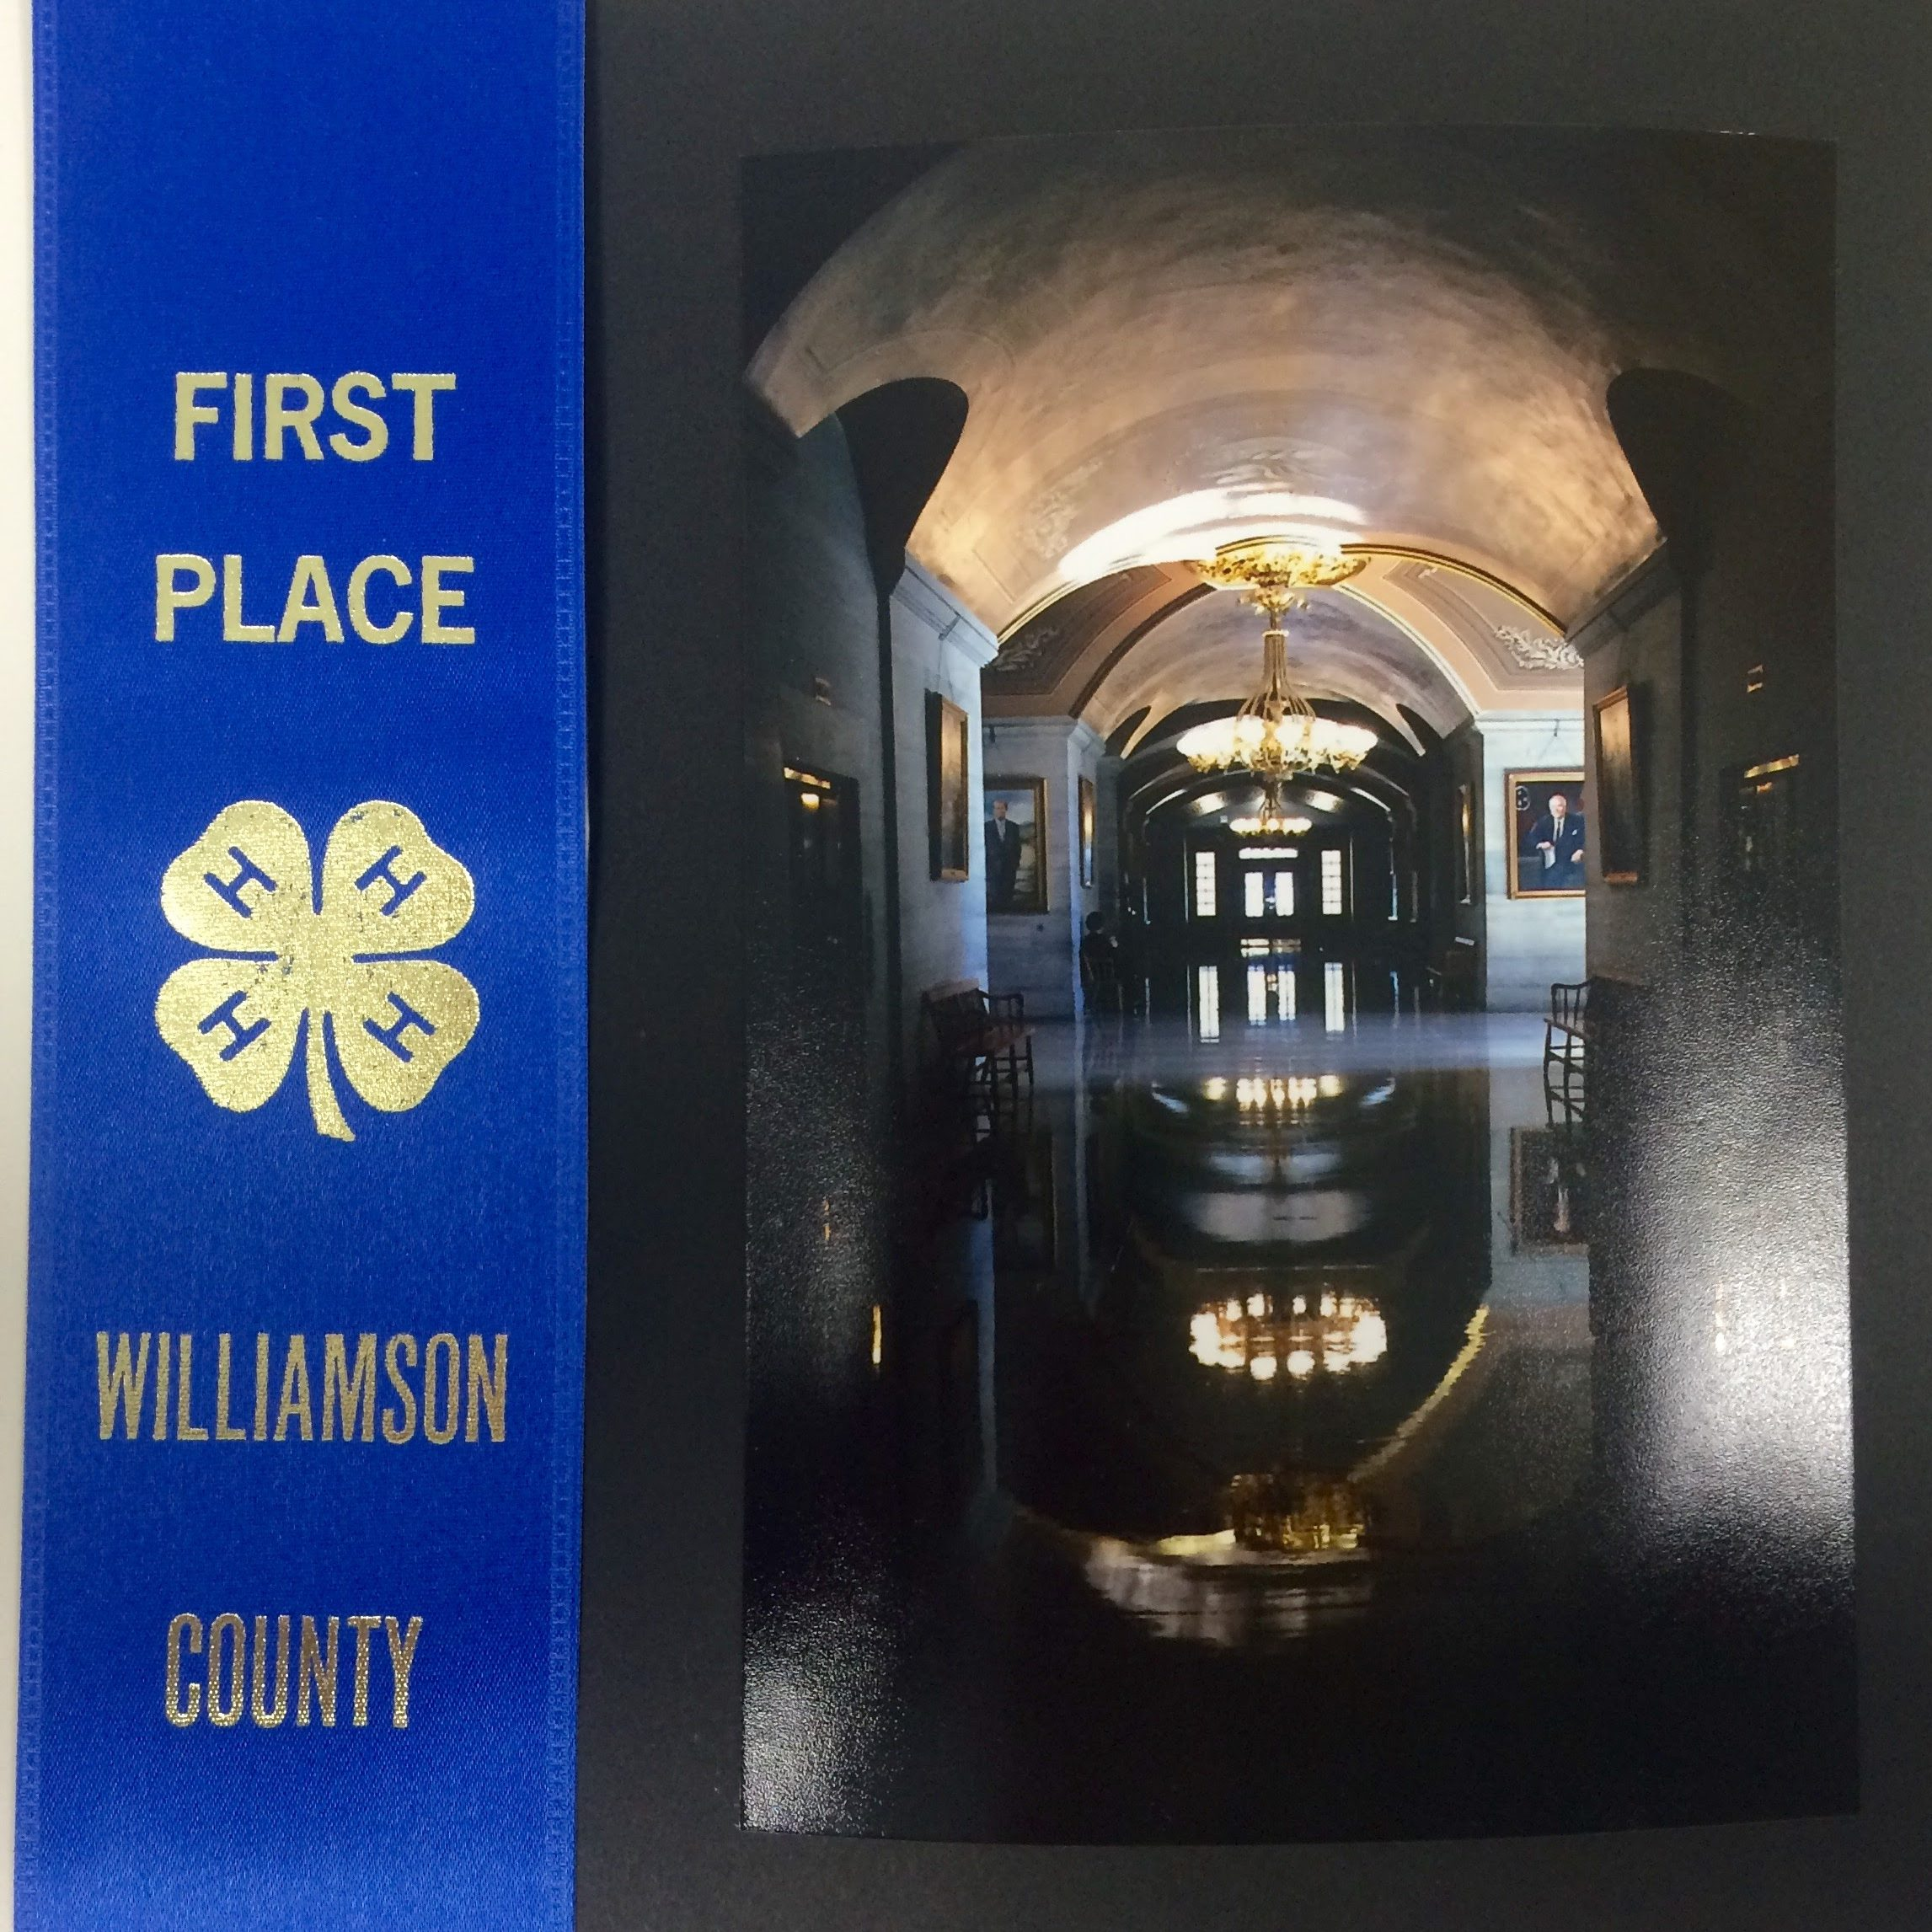 photo with a first place ribbon